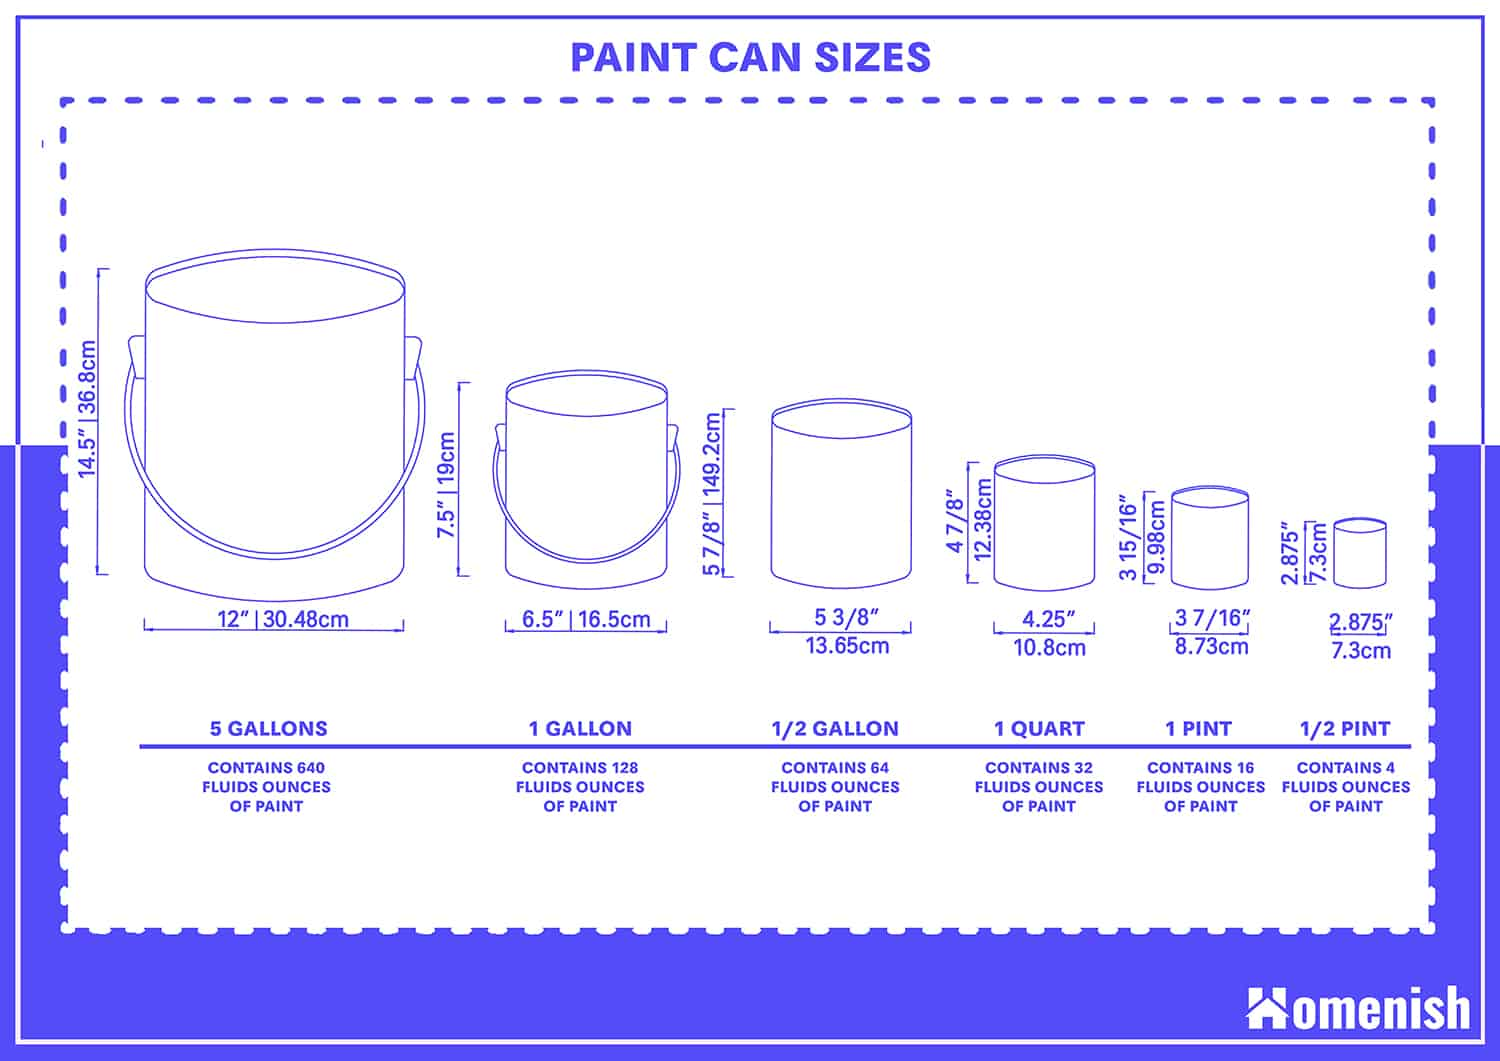 Paint Can Sizes